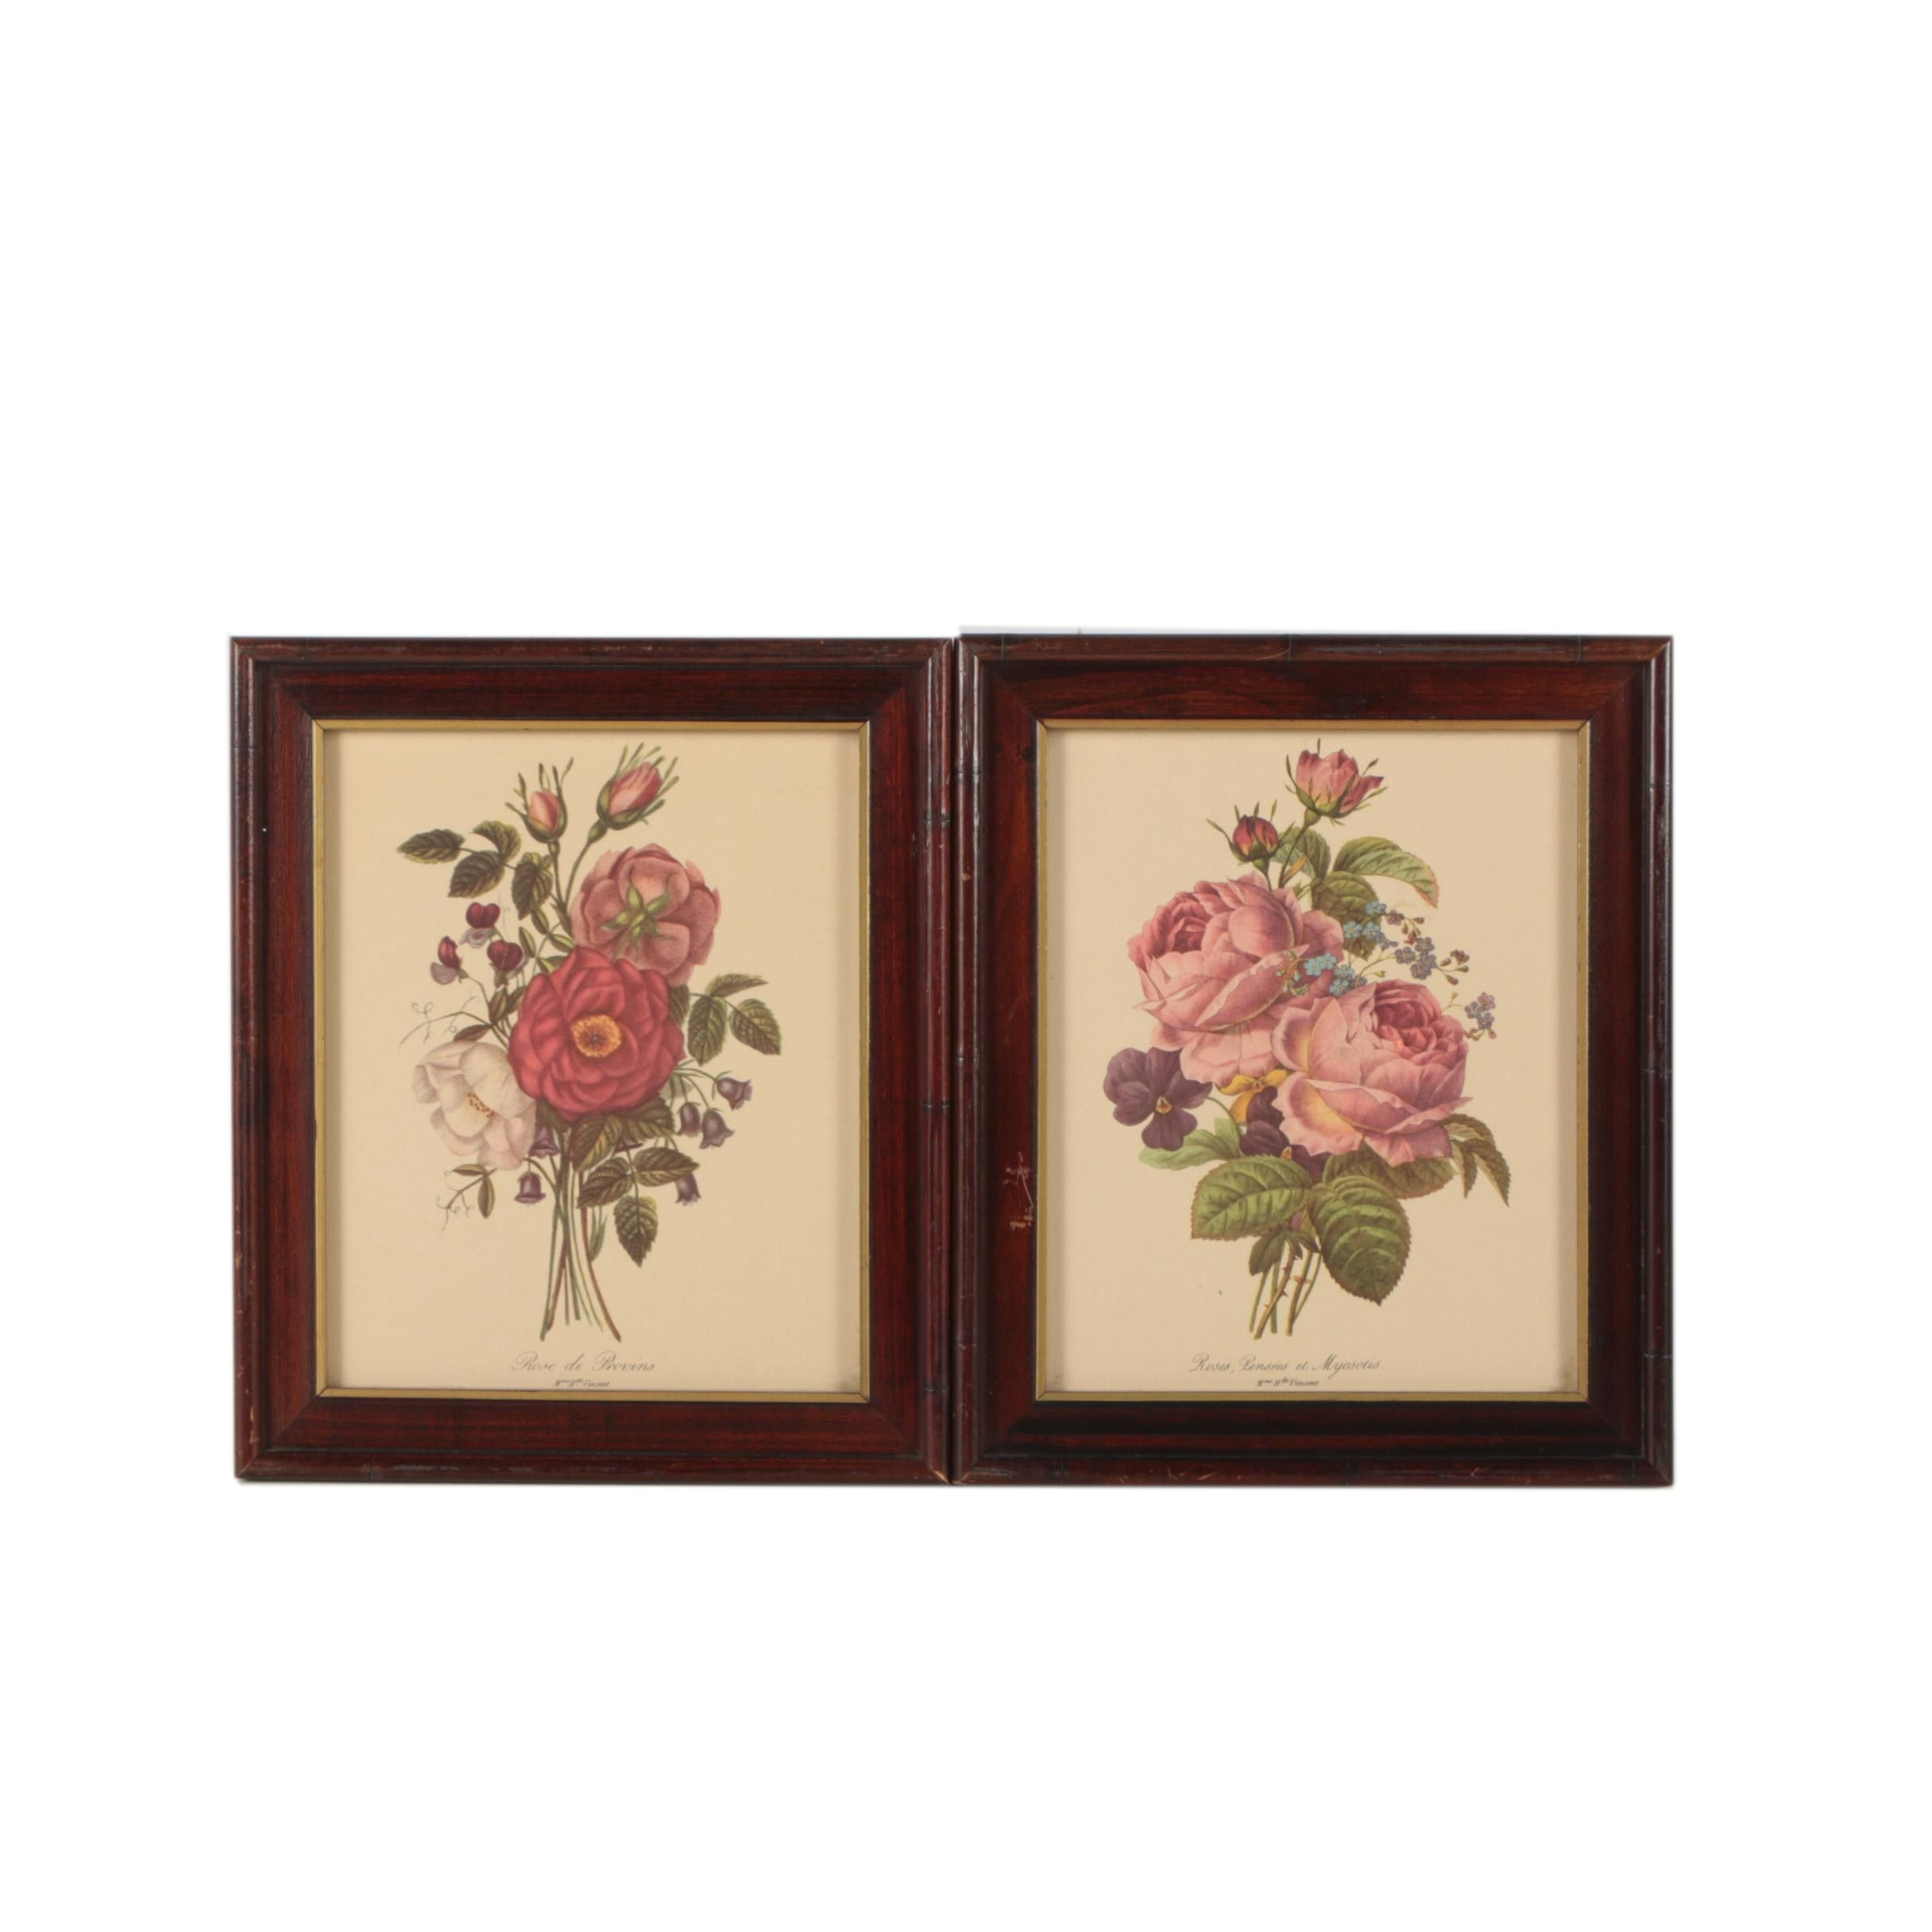 Two Offset Lithograph Prints on Paper of Roses after Henriette Vincent